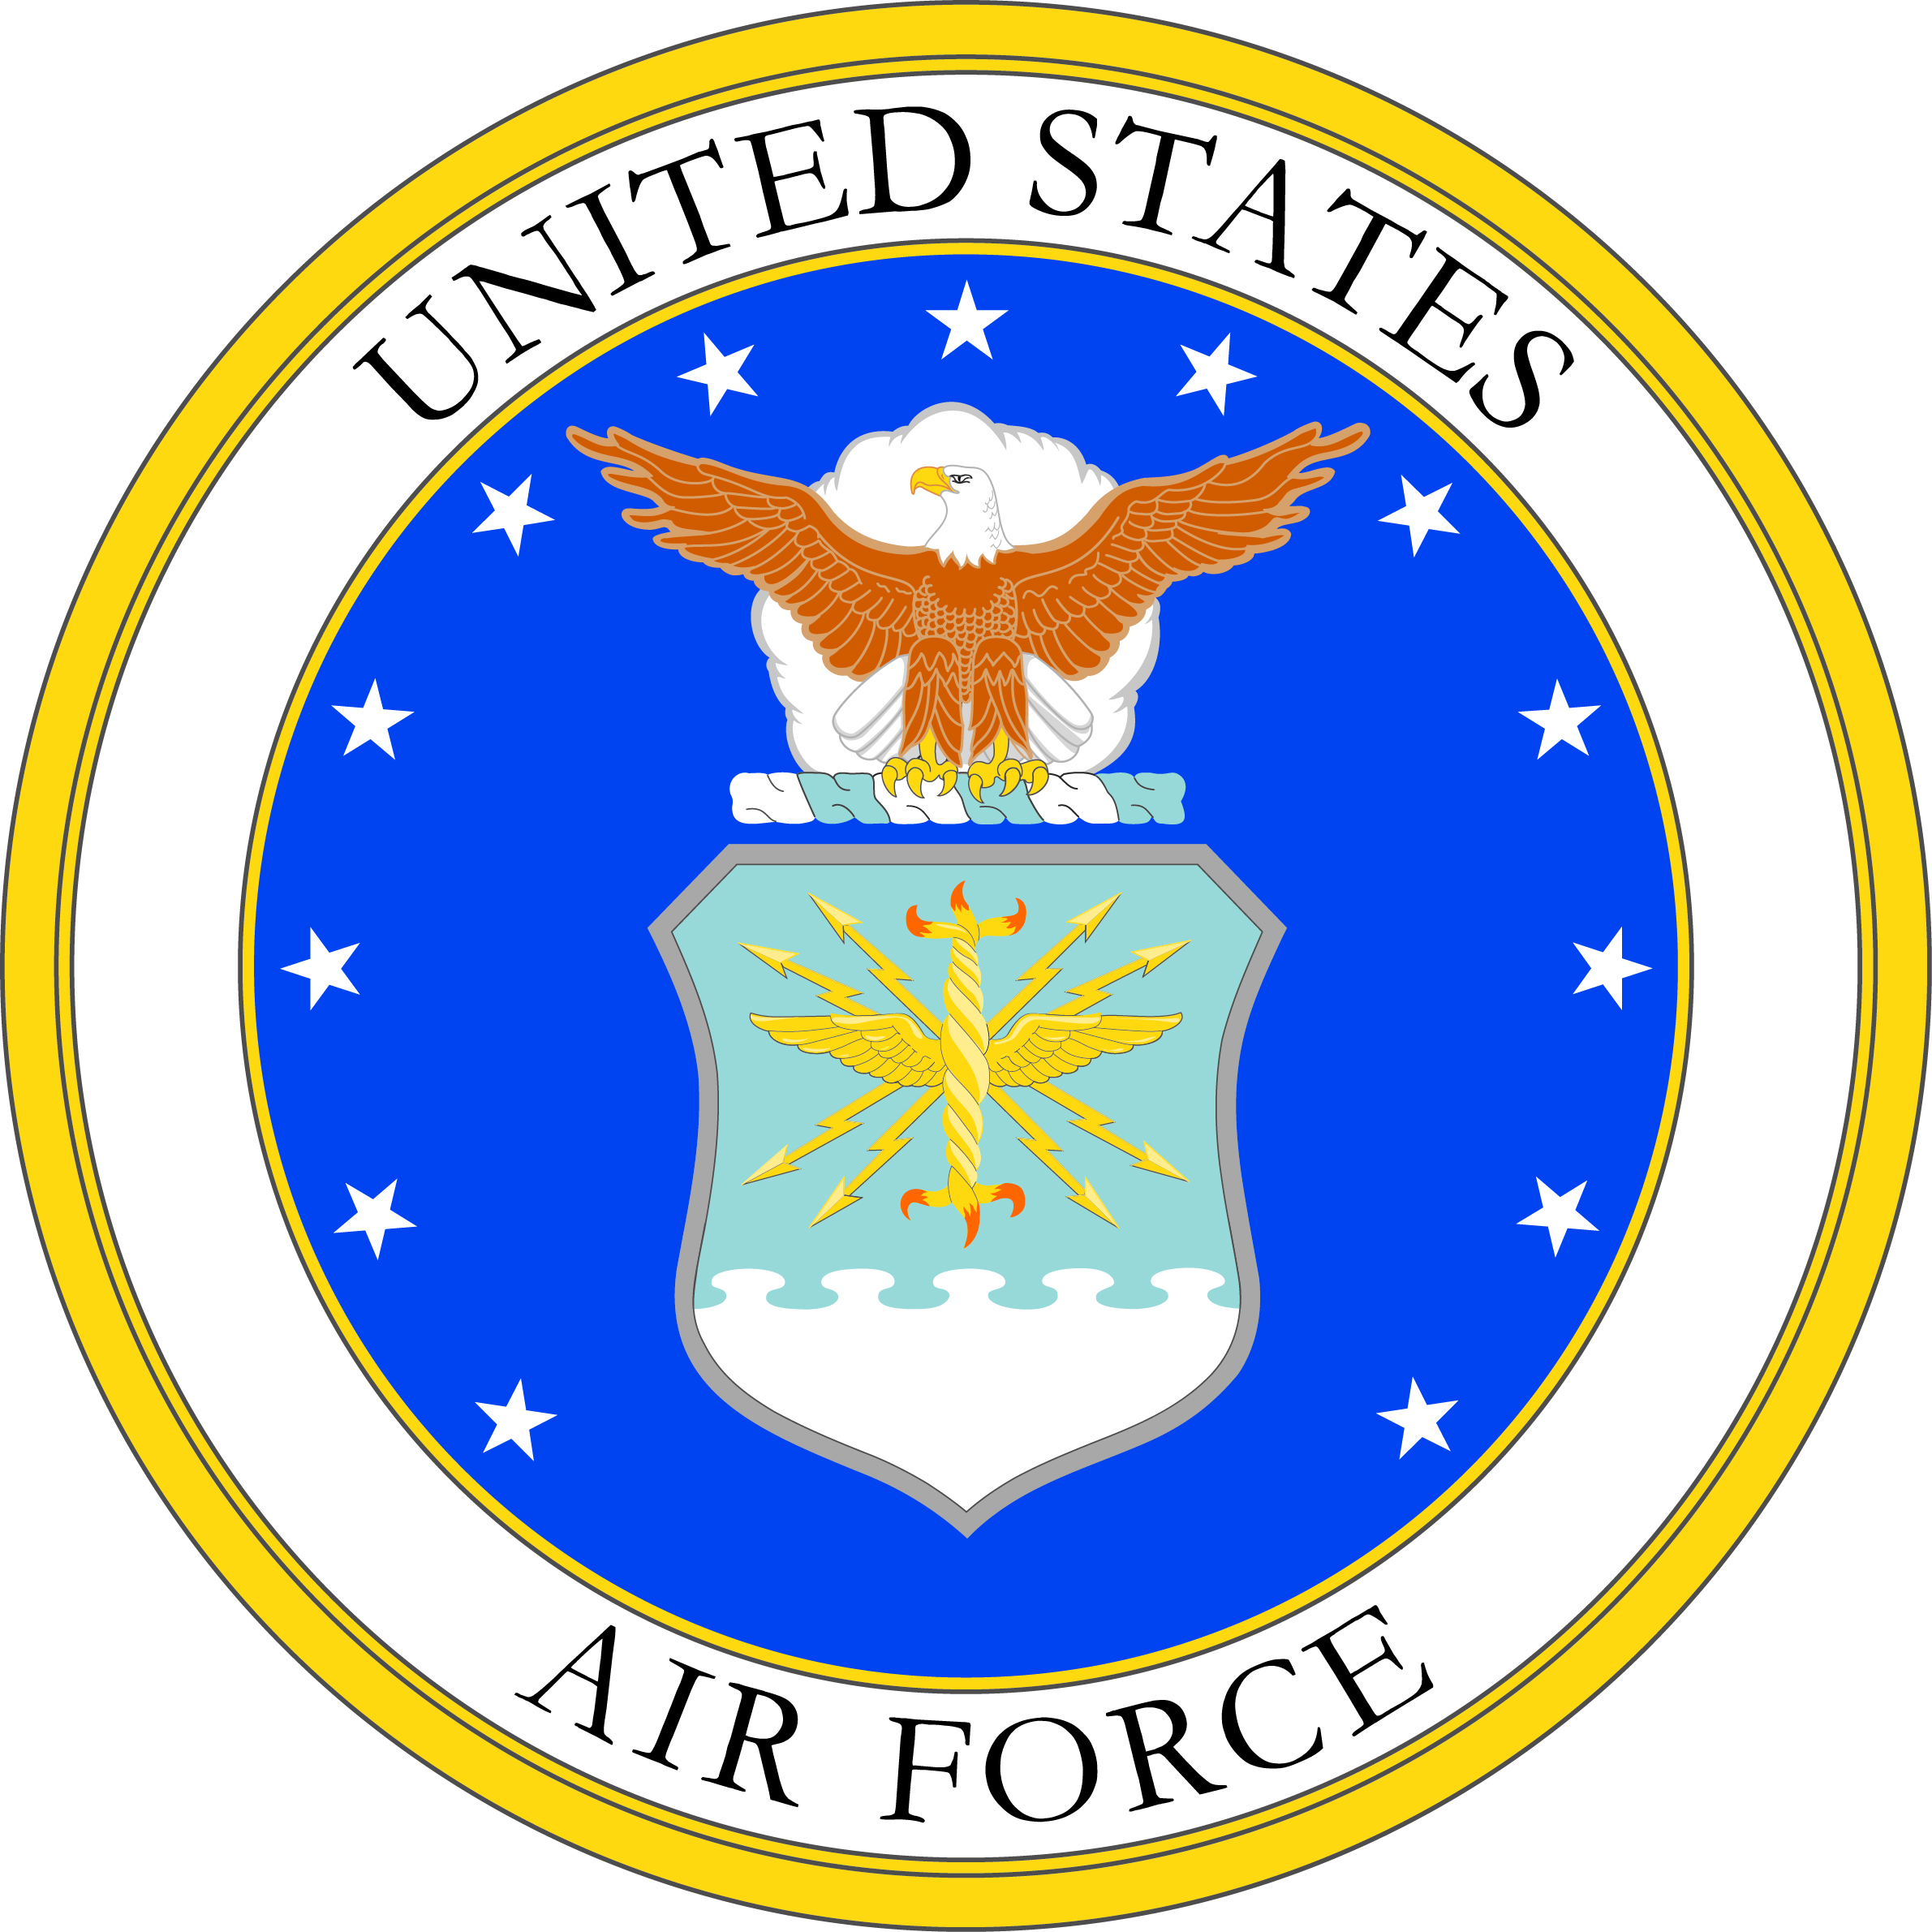 Af emblem clipart free stock Free Air Force Clipart, Download Free Clip Art, Free Clip Art on ... free stock